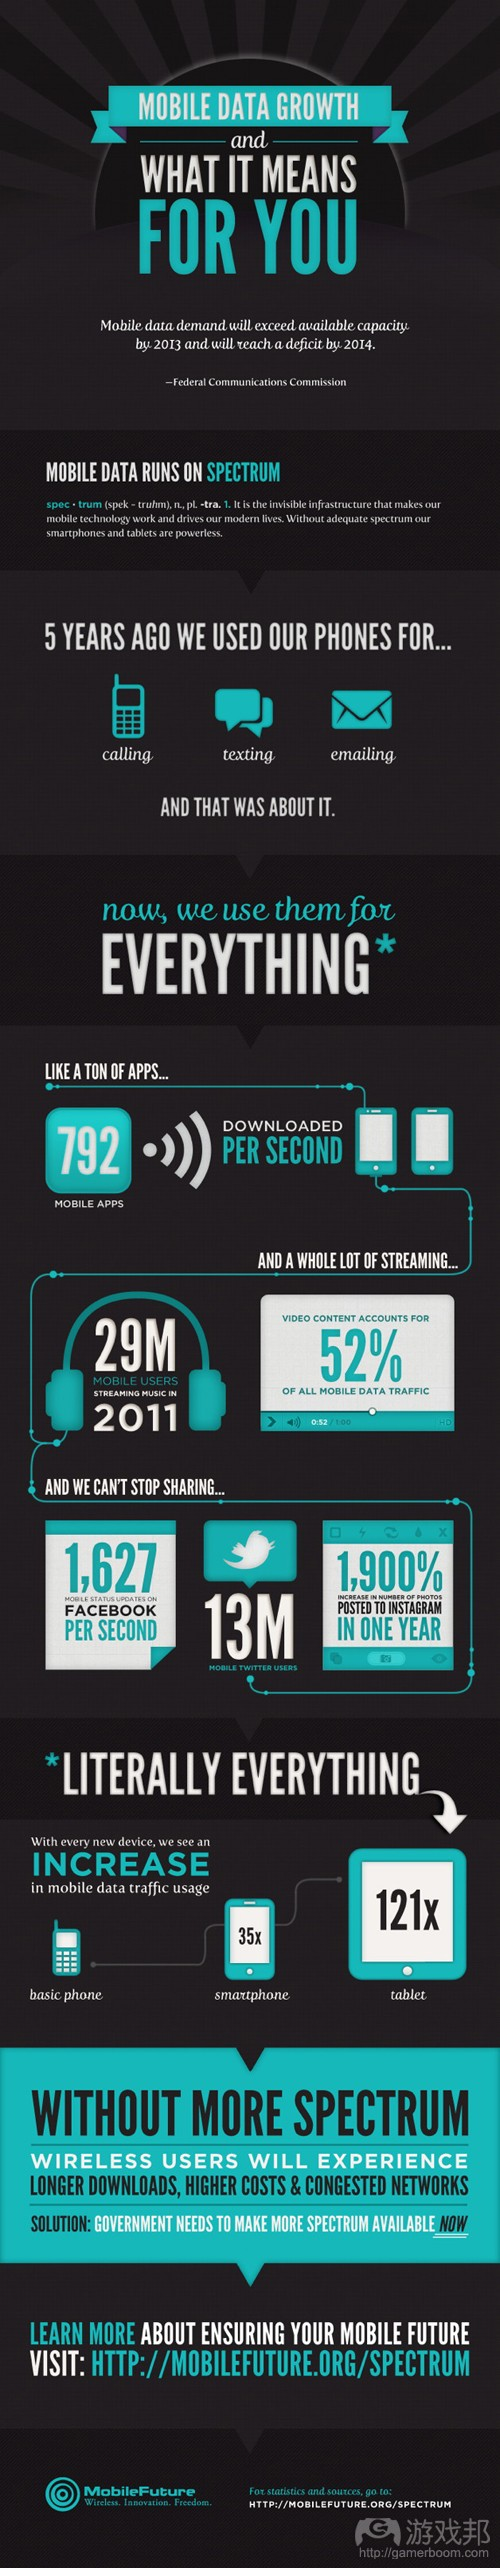 spectrum-infographic(from Mobile Future)